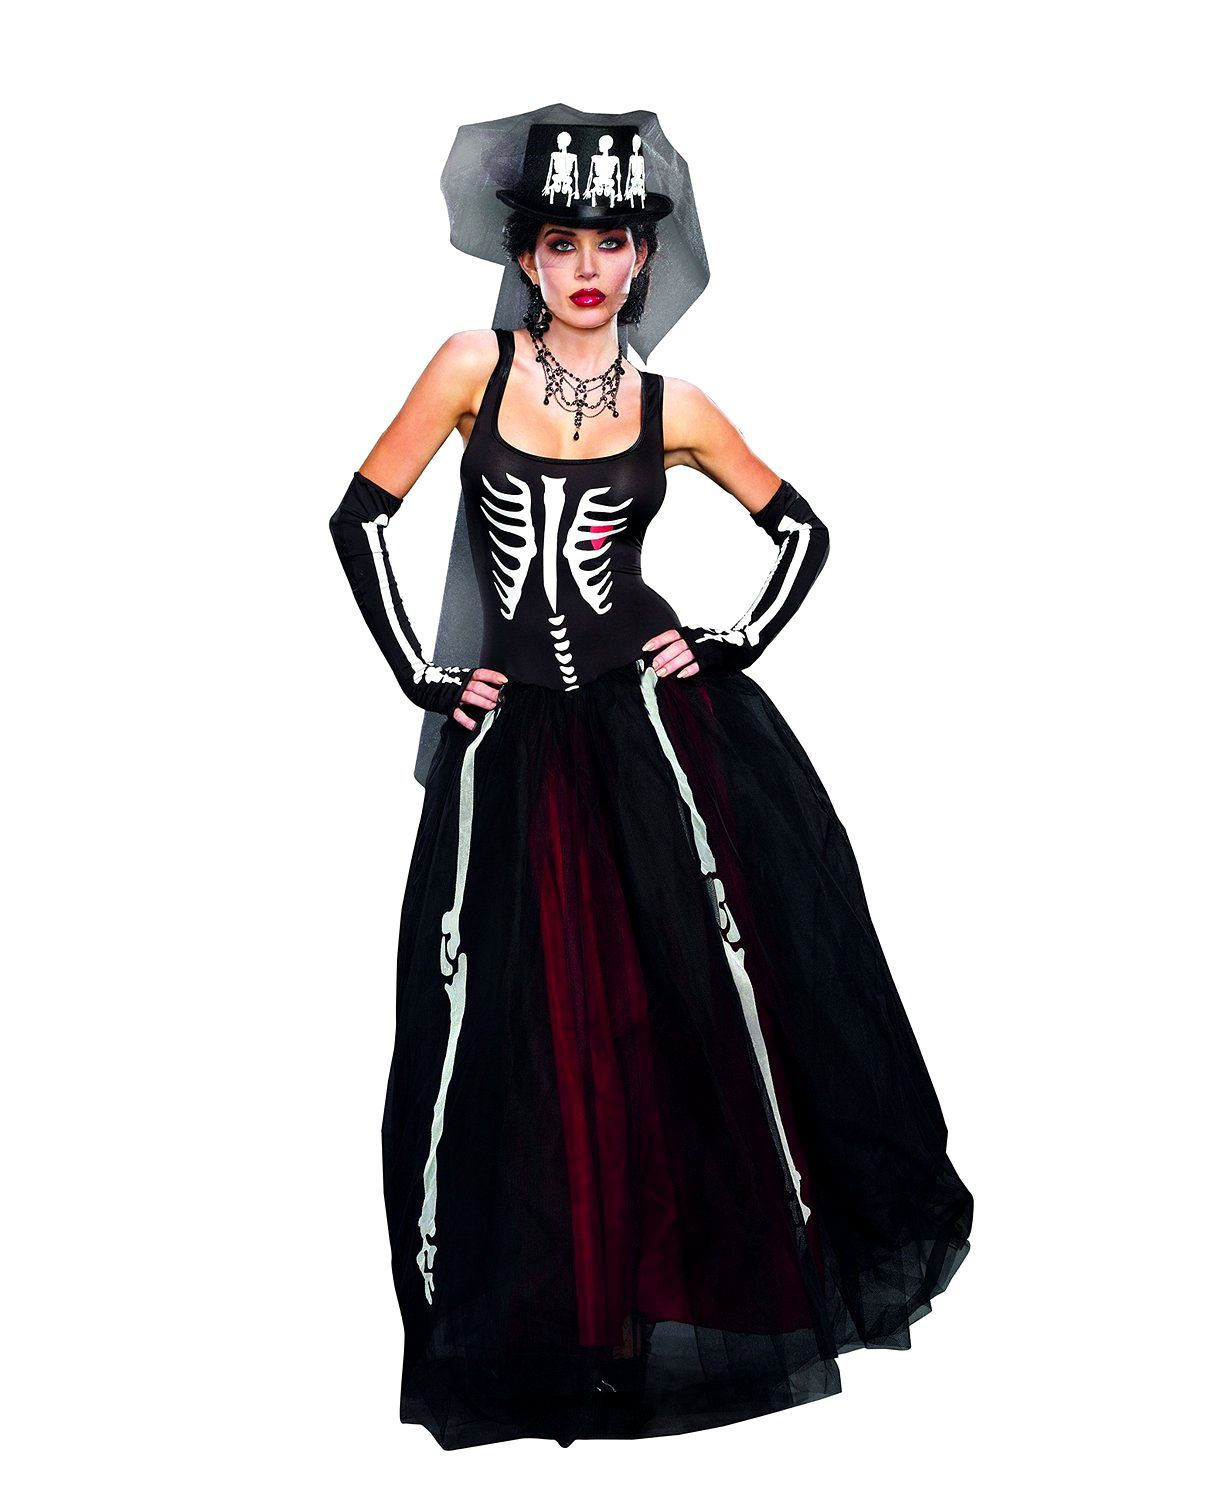 Dead Bride Halloween Costume.Ms Bones Dress Zombie Bride Day Of The Dead Skeleton Gown Women S Costume Sm Xl